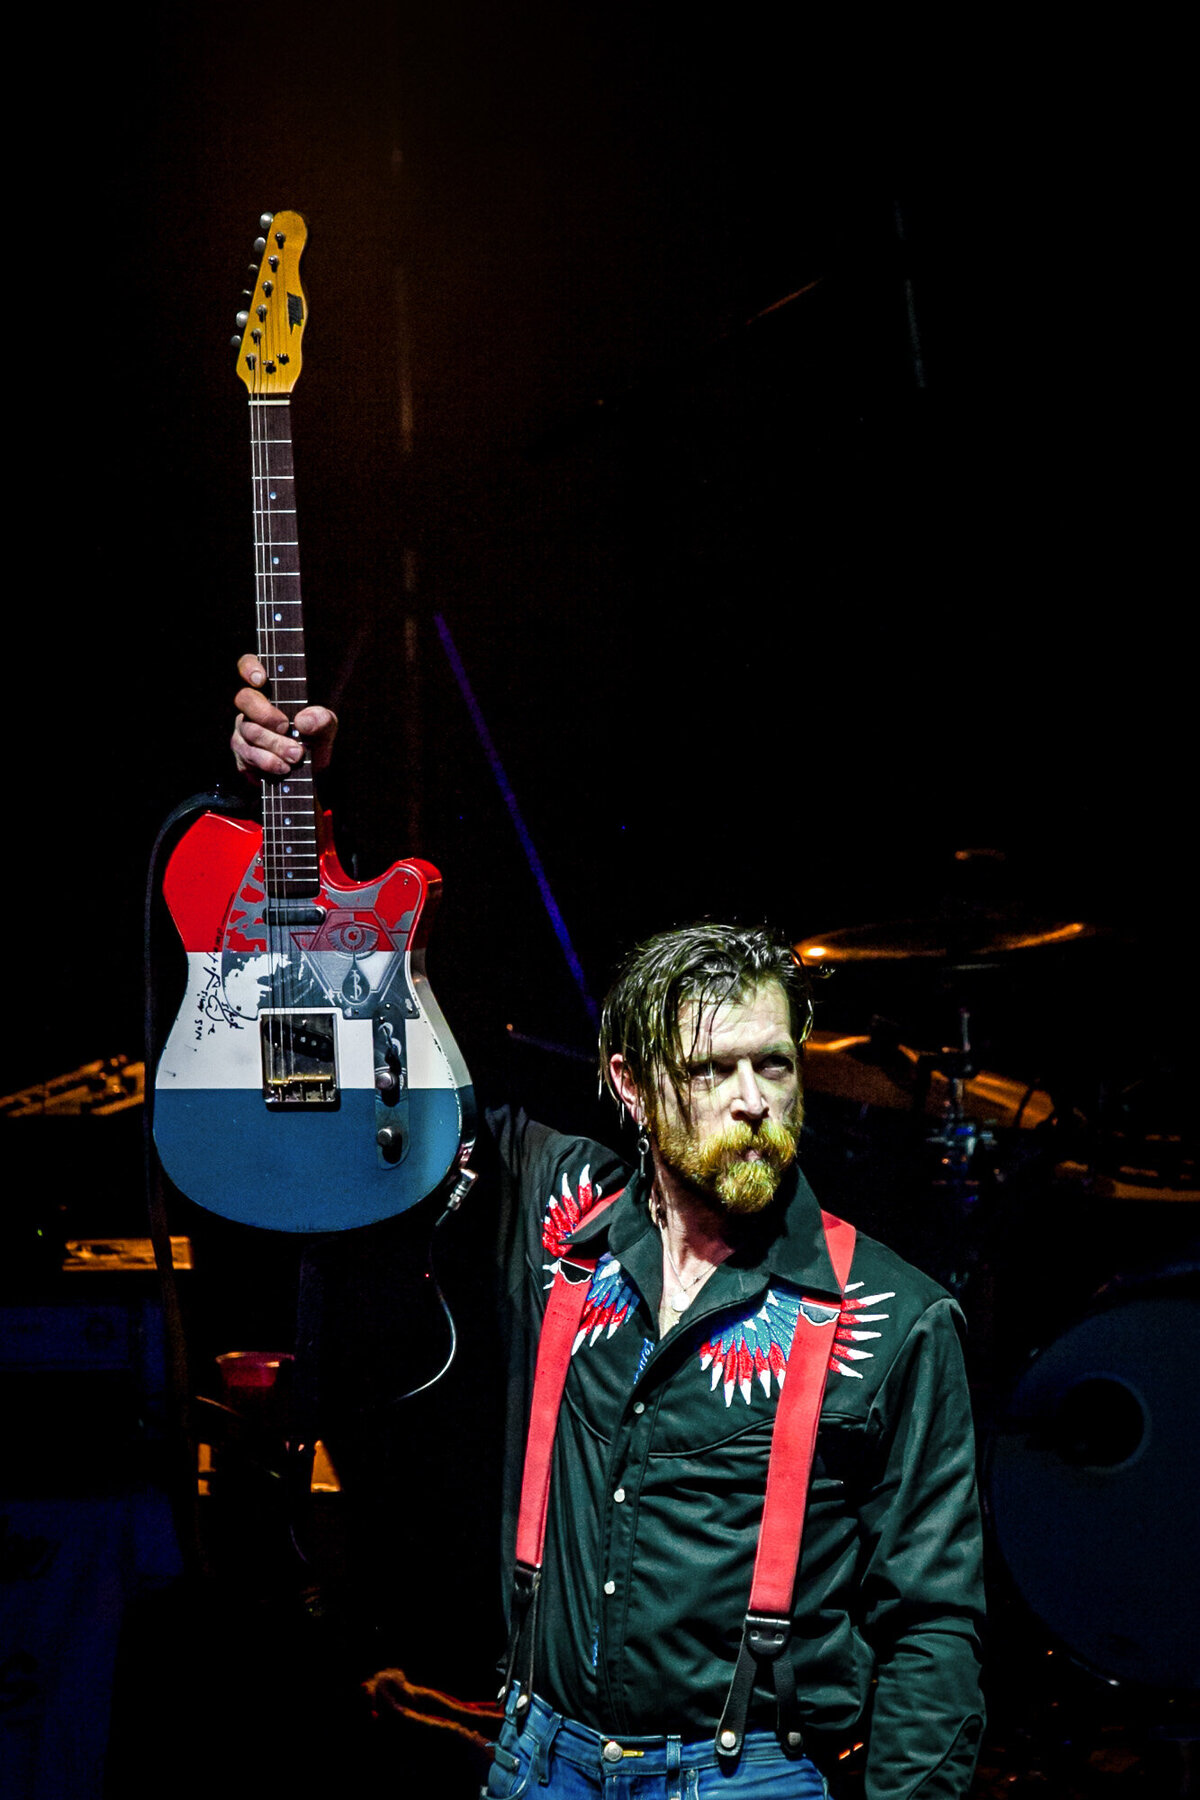 021-Eagles-of-Death-Metal-Jesse-Hughes-Paris-France-Bataclan